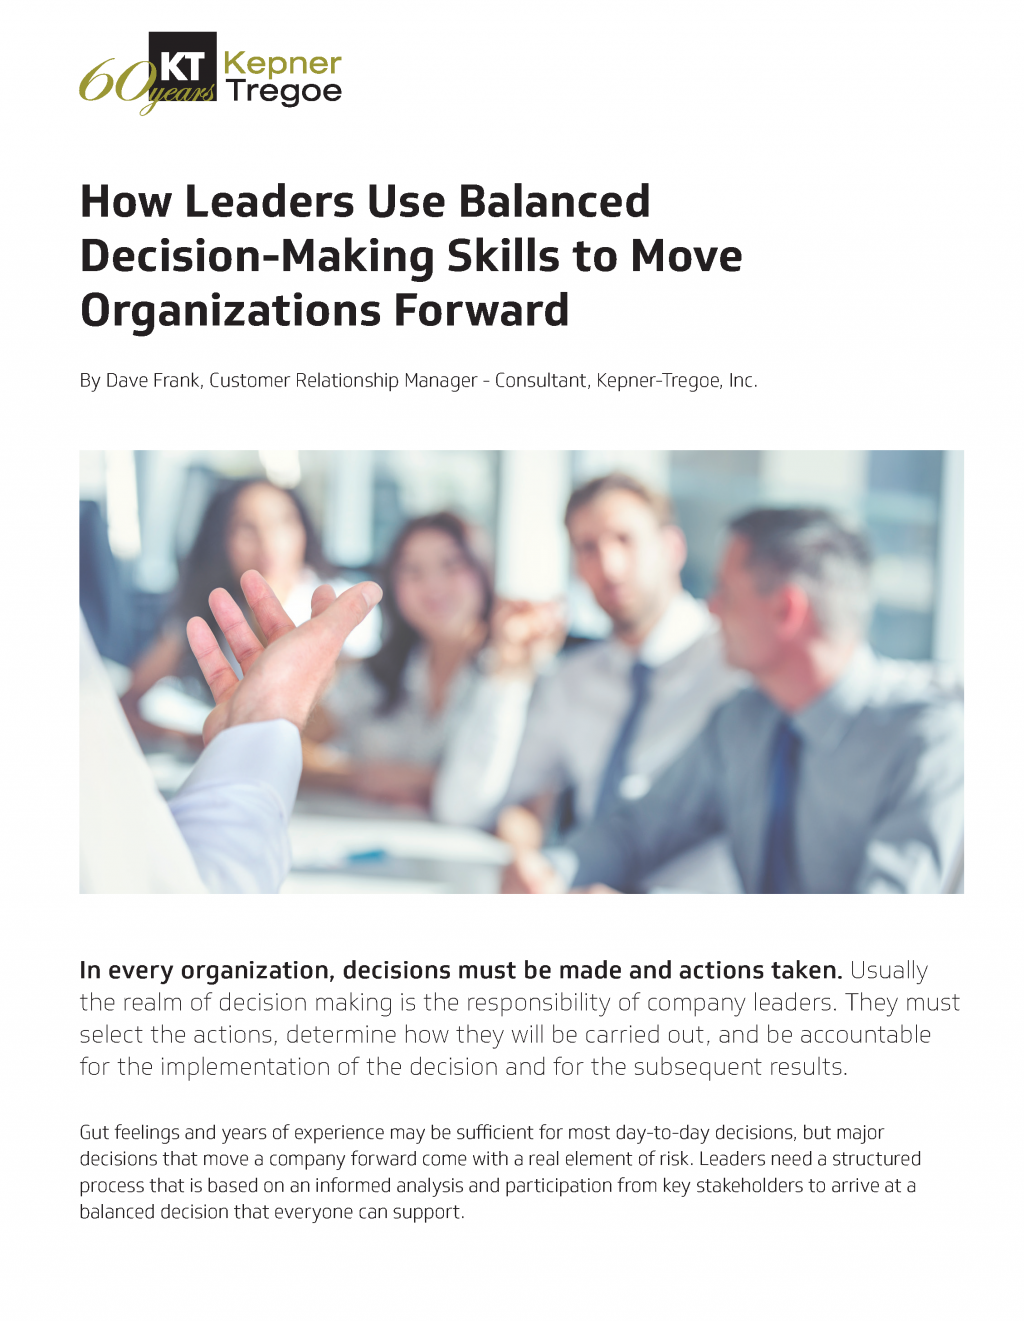 How Leaders Use Balanced Decision-Making Skills to Move Organizations Forward